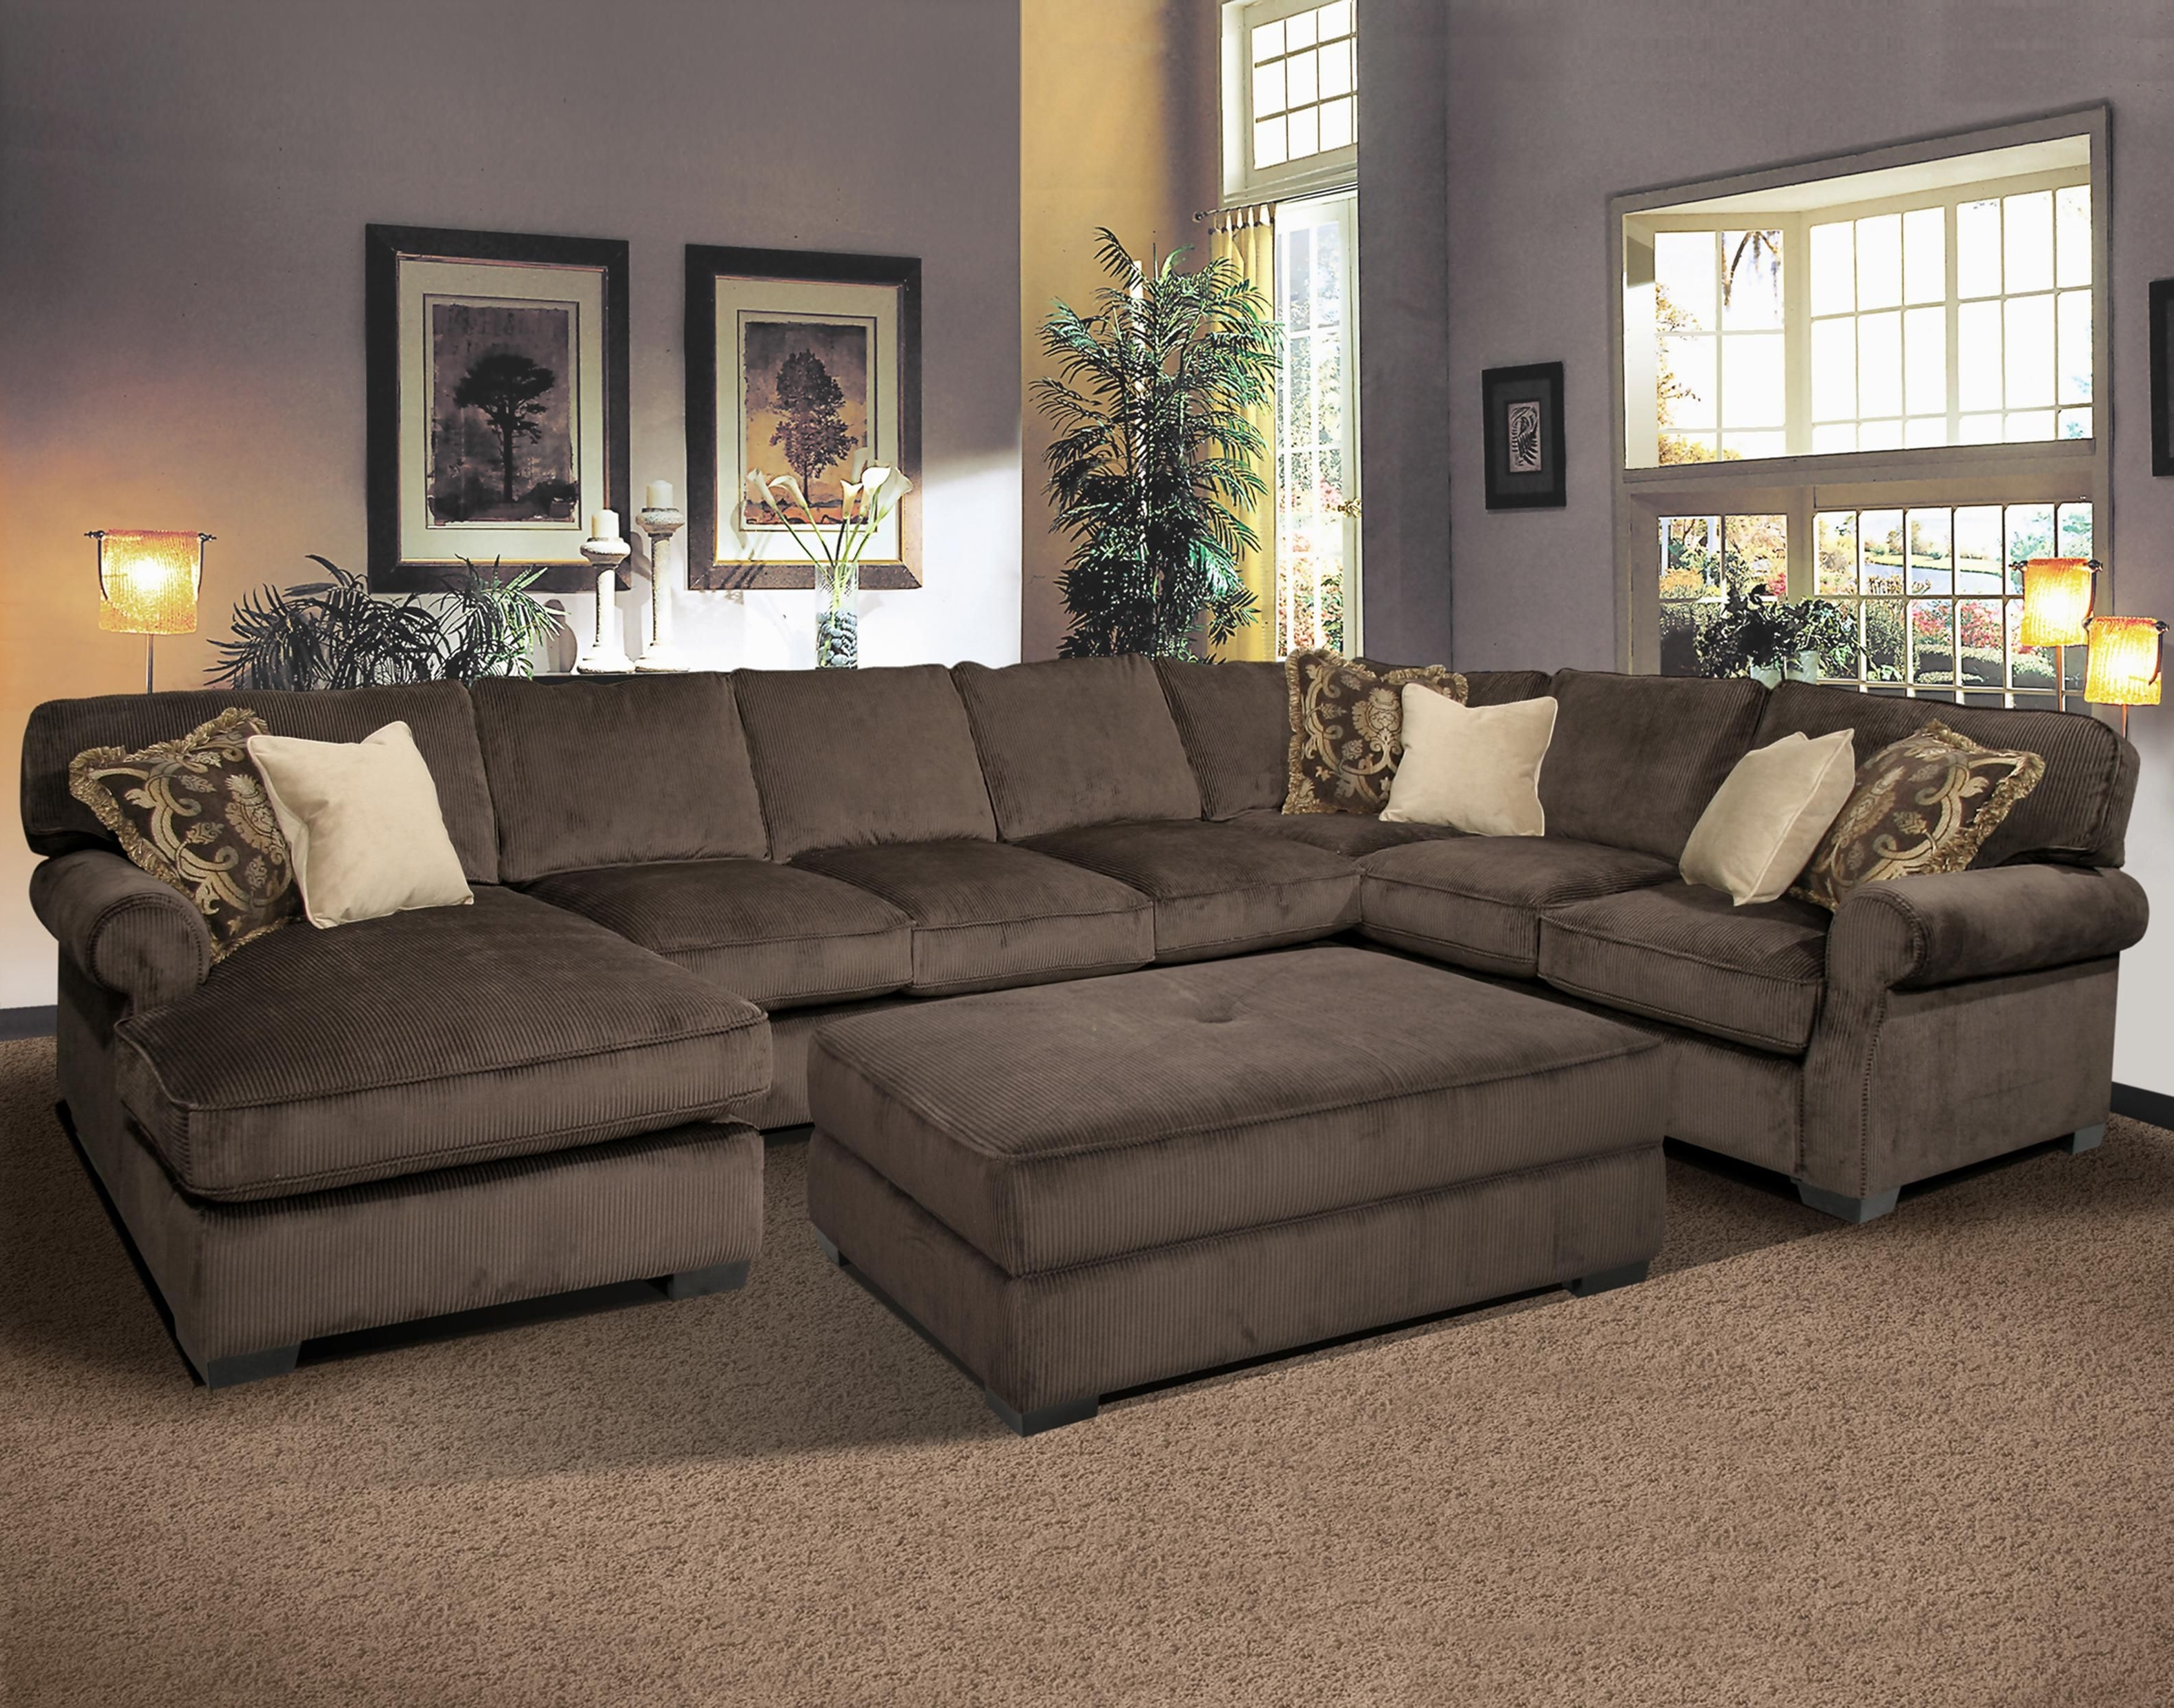 Vancouver Sectional Sofas With Latest Big And Comfy Grand Island Large, 7 Seat Sectional Sofa With Right (View 8 of 15)